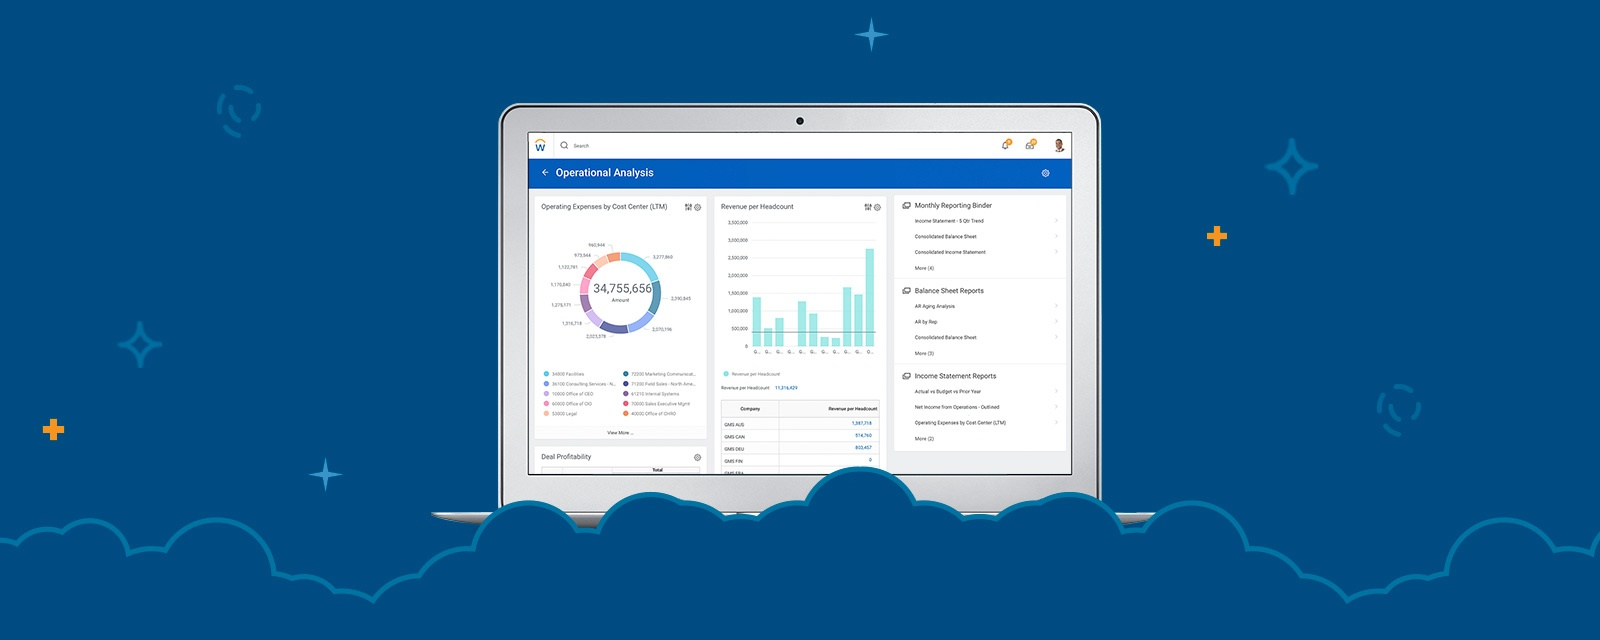 Workday Named a Leader in Gartner Magic Quadrant for Cloud Core ...